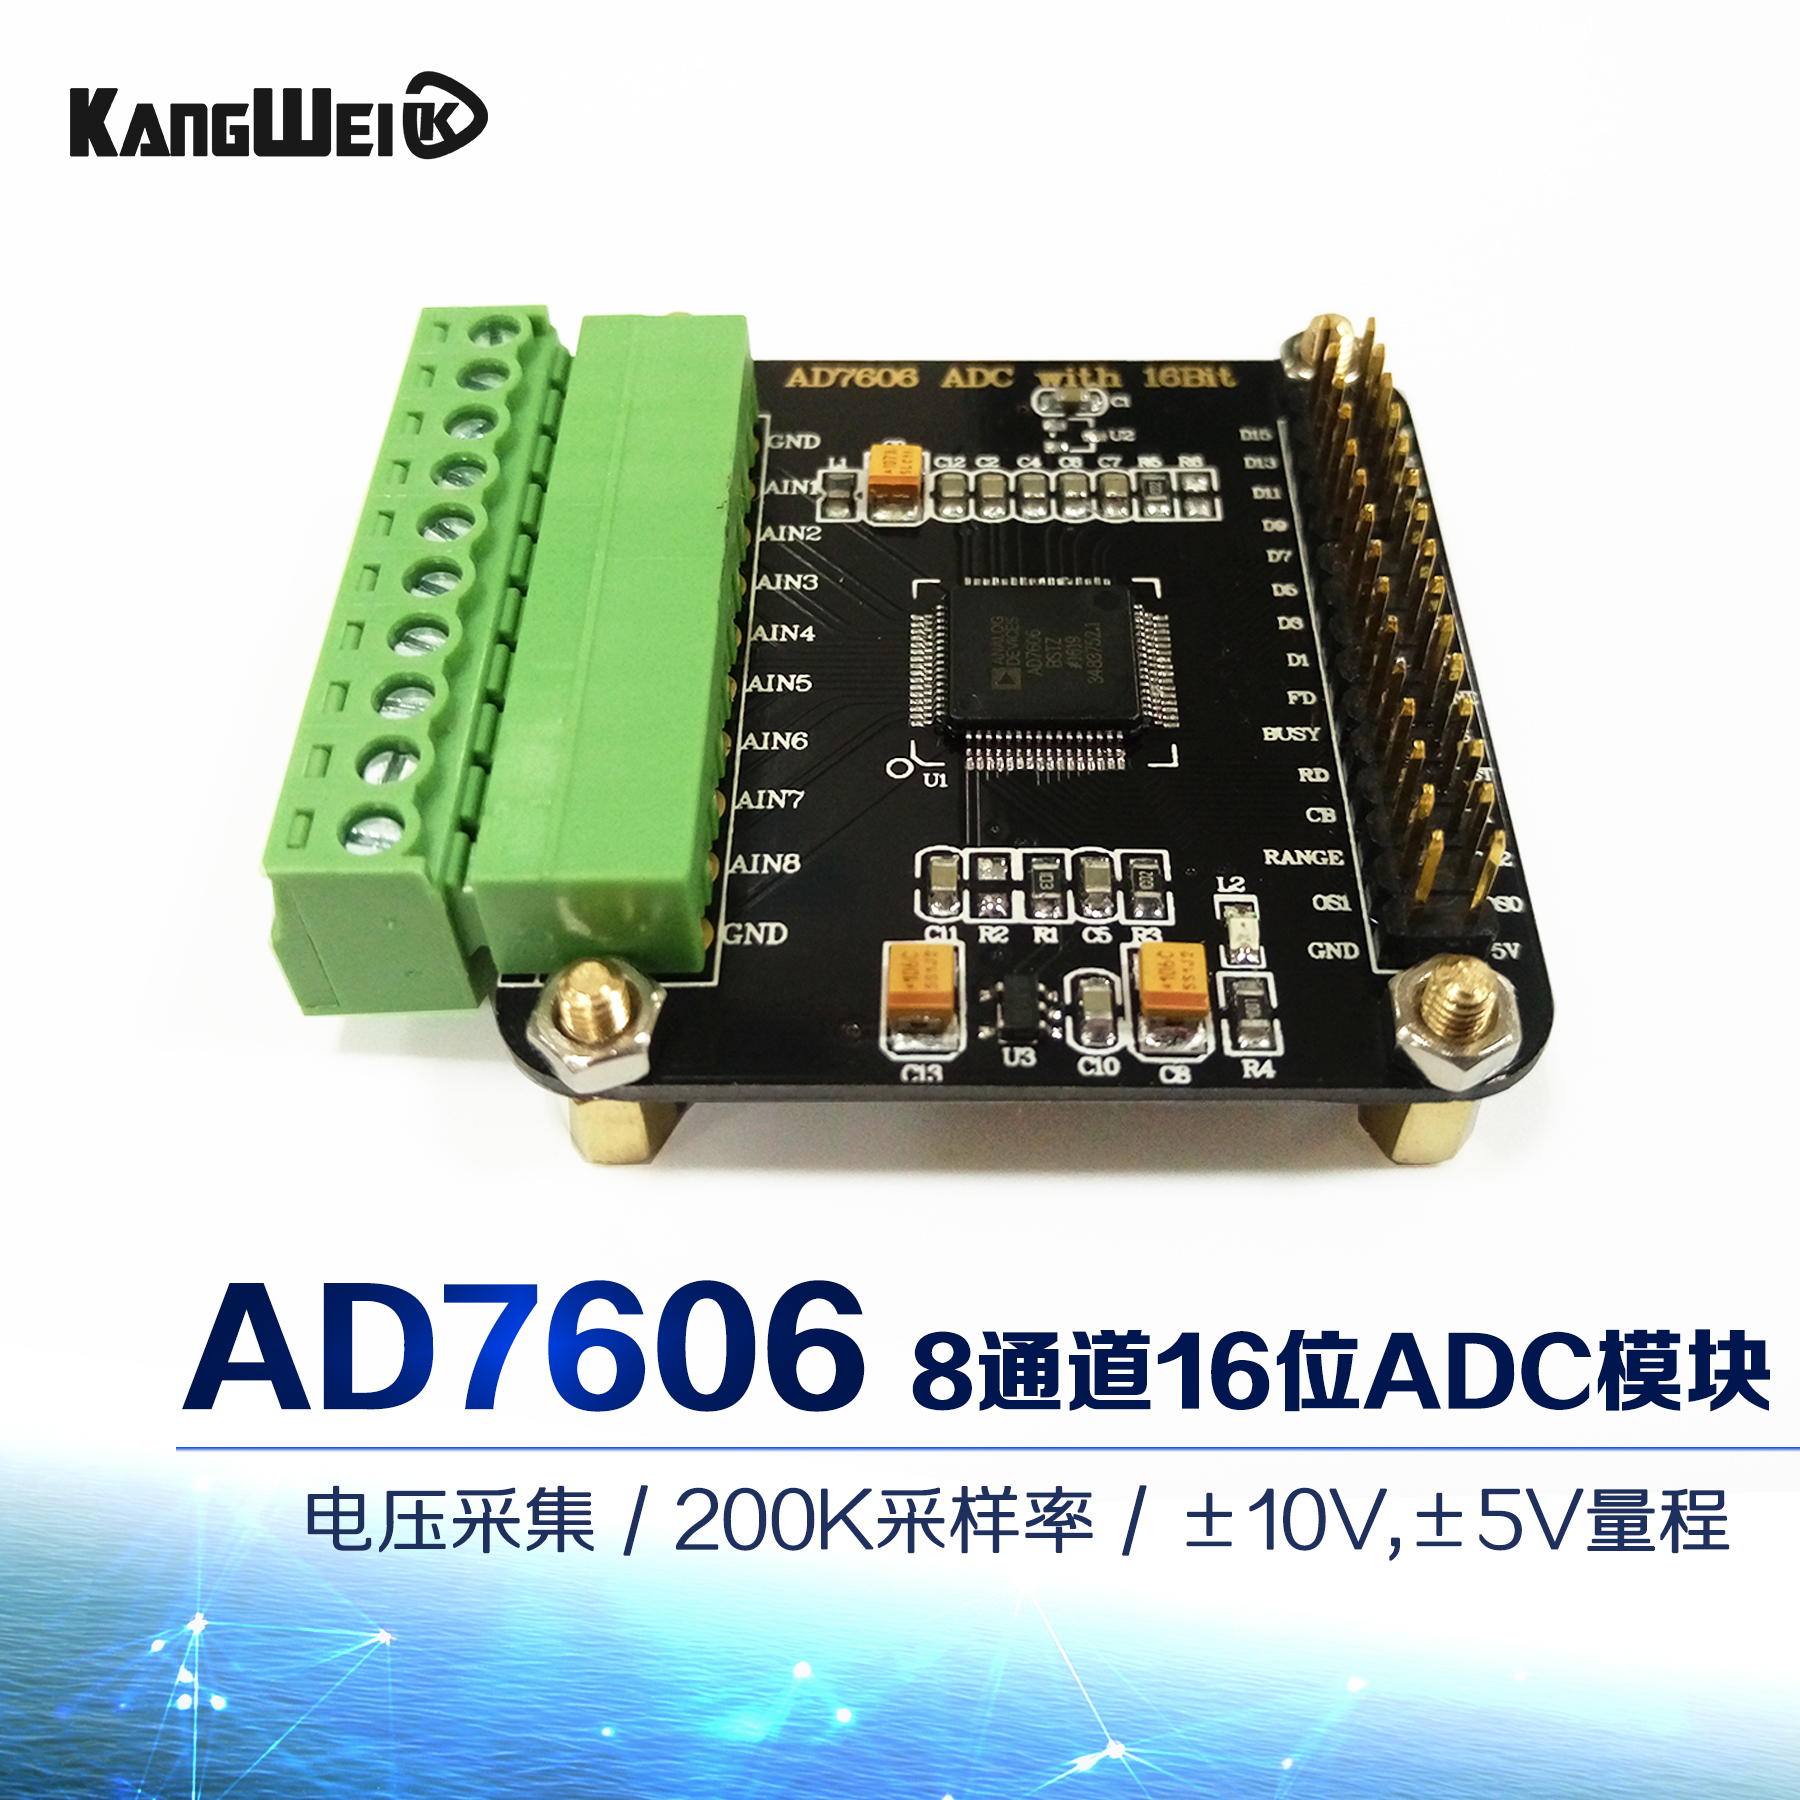 AD7606 multi-channel AD data acquisition module, 16 bit ADC, 8 way synchronous sampling frequency, 200KHz lepin 07055 1628pcs genuine batman movie series the arkham s lunatic asylum set building blocks bricks toys for children 70912